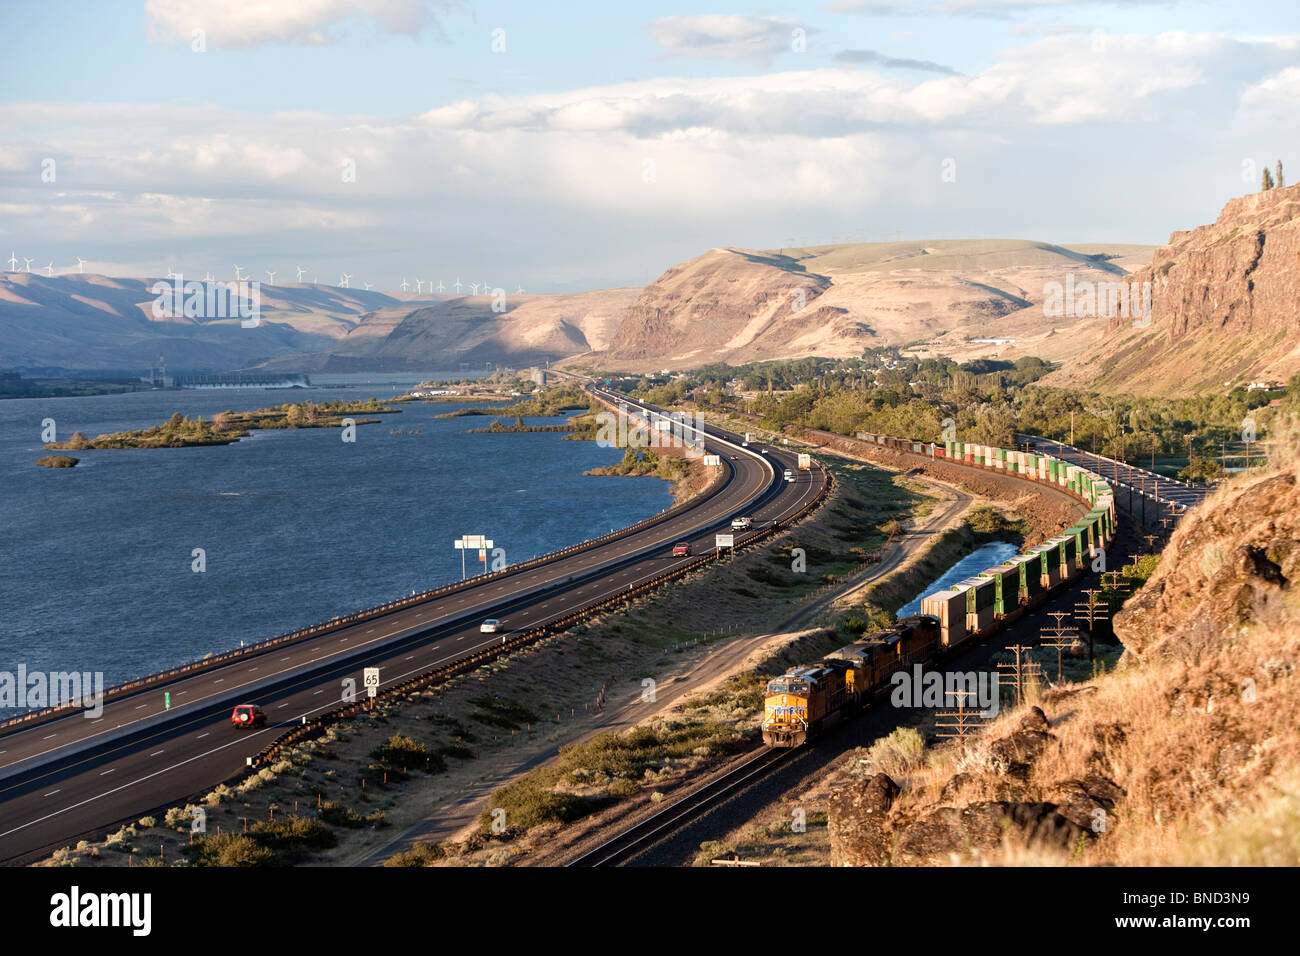 Columbia River Gorge. - Stock Image